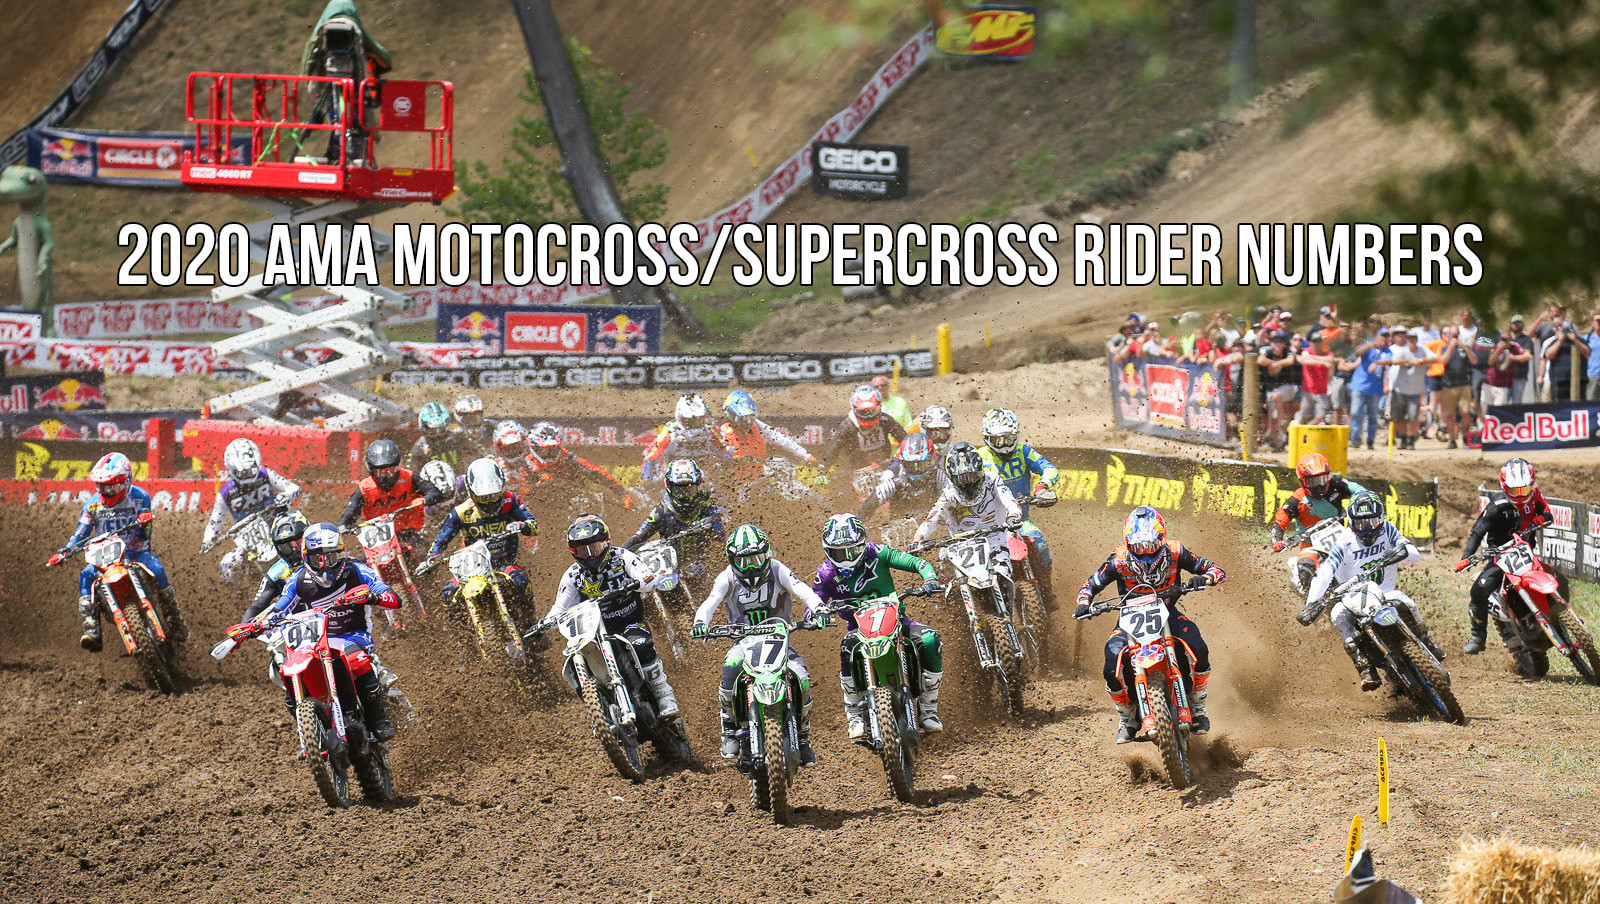 2020 AMA Motocross/Supercross National Rider Numbers